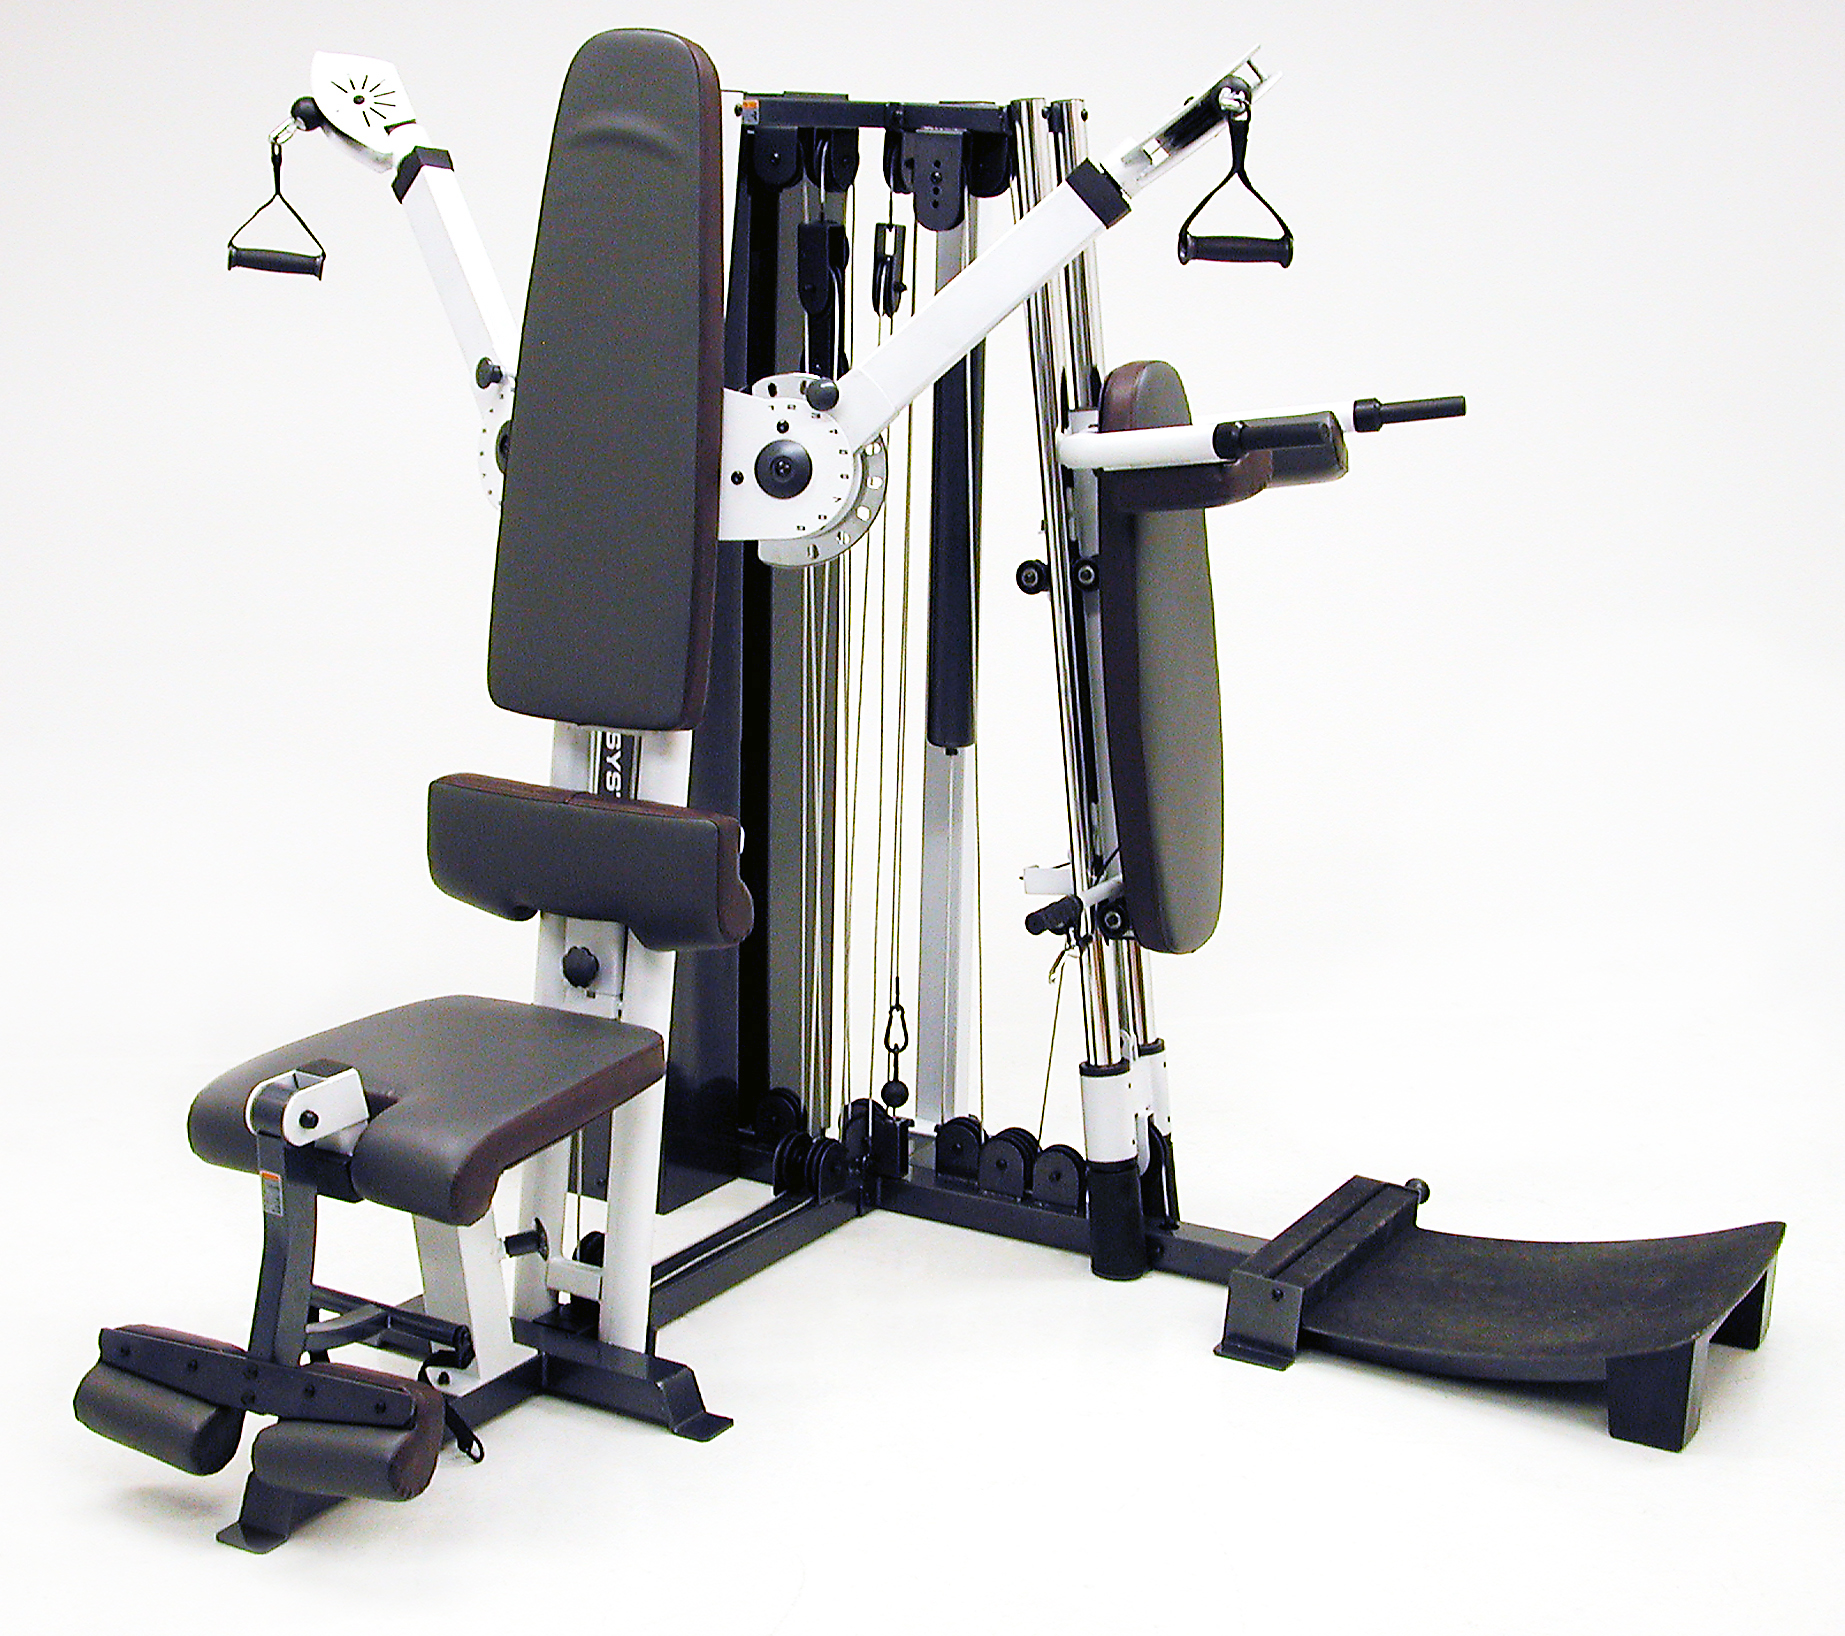 free motion s83 power system home gym 0 0 FreeMotion S83 Power System Home Gym